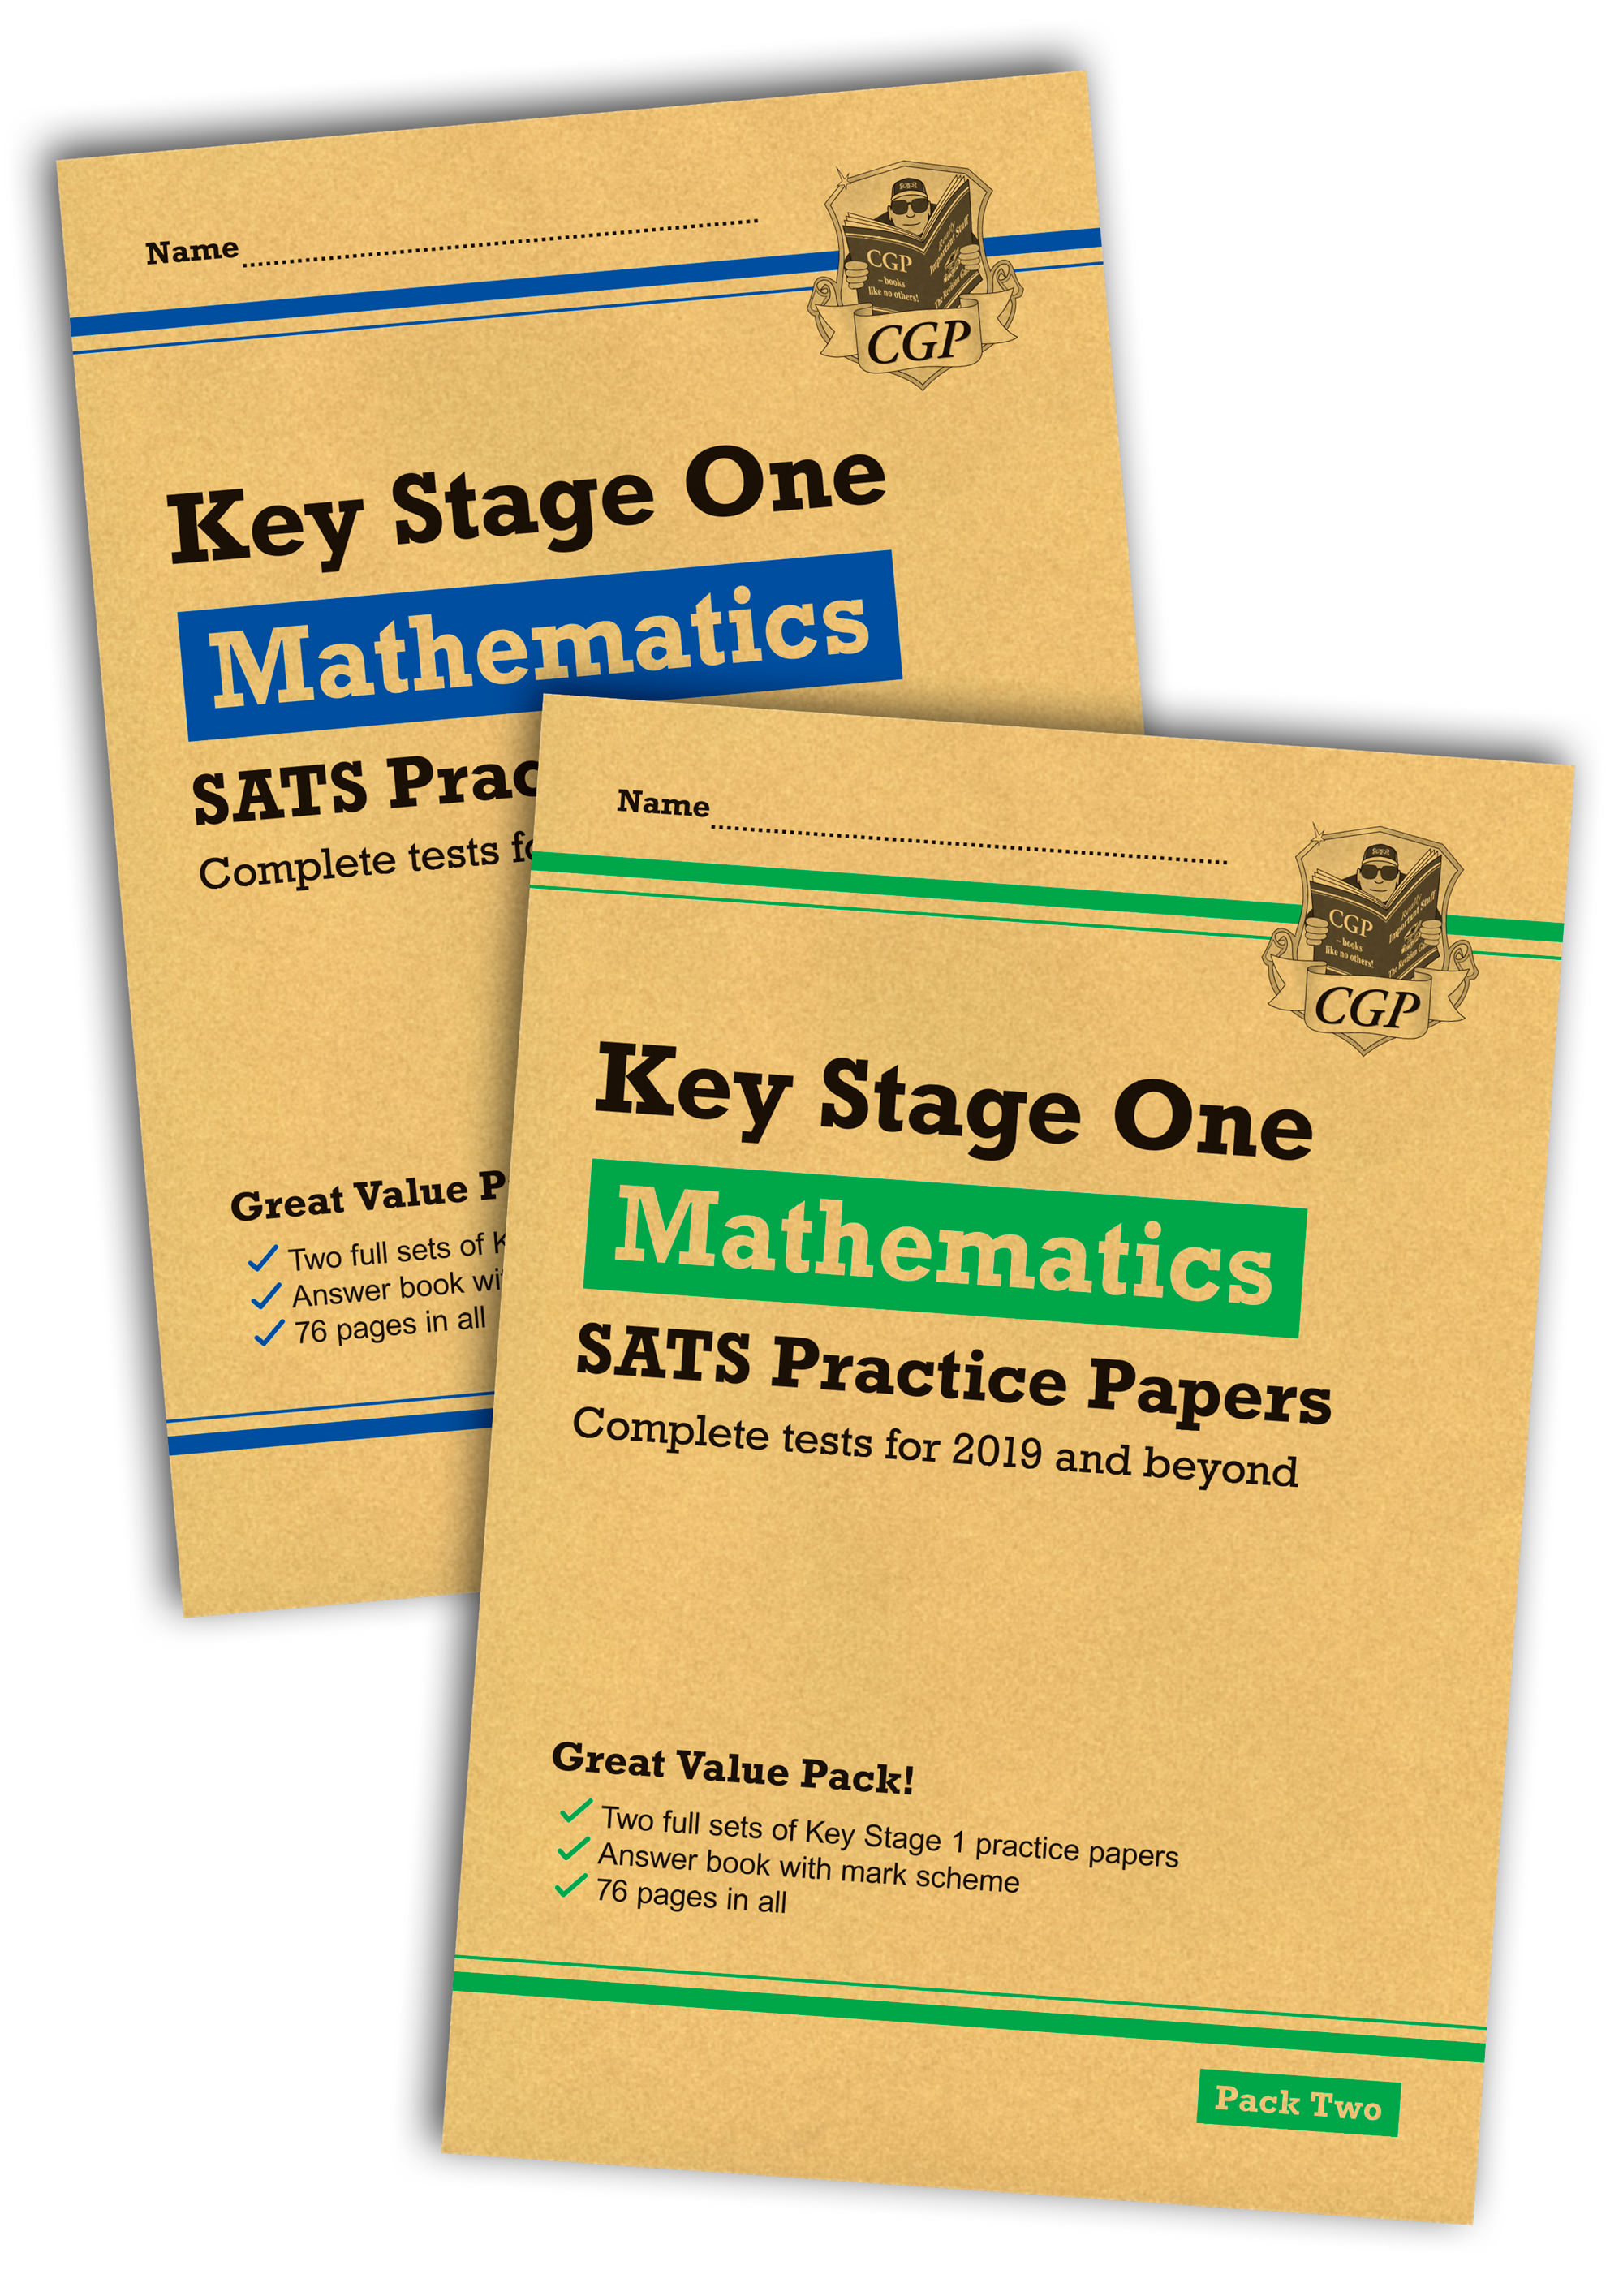 MHB2P13 - New KS1 Maths SATS Practice Paper Bundle: Pack 1 & 2 (for the 2019 tests)